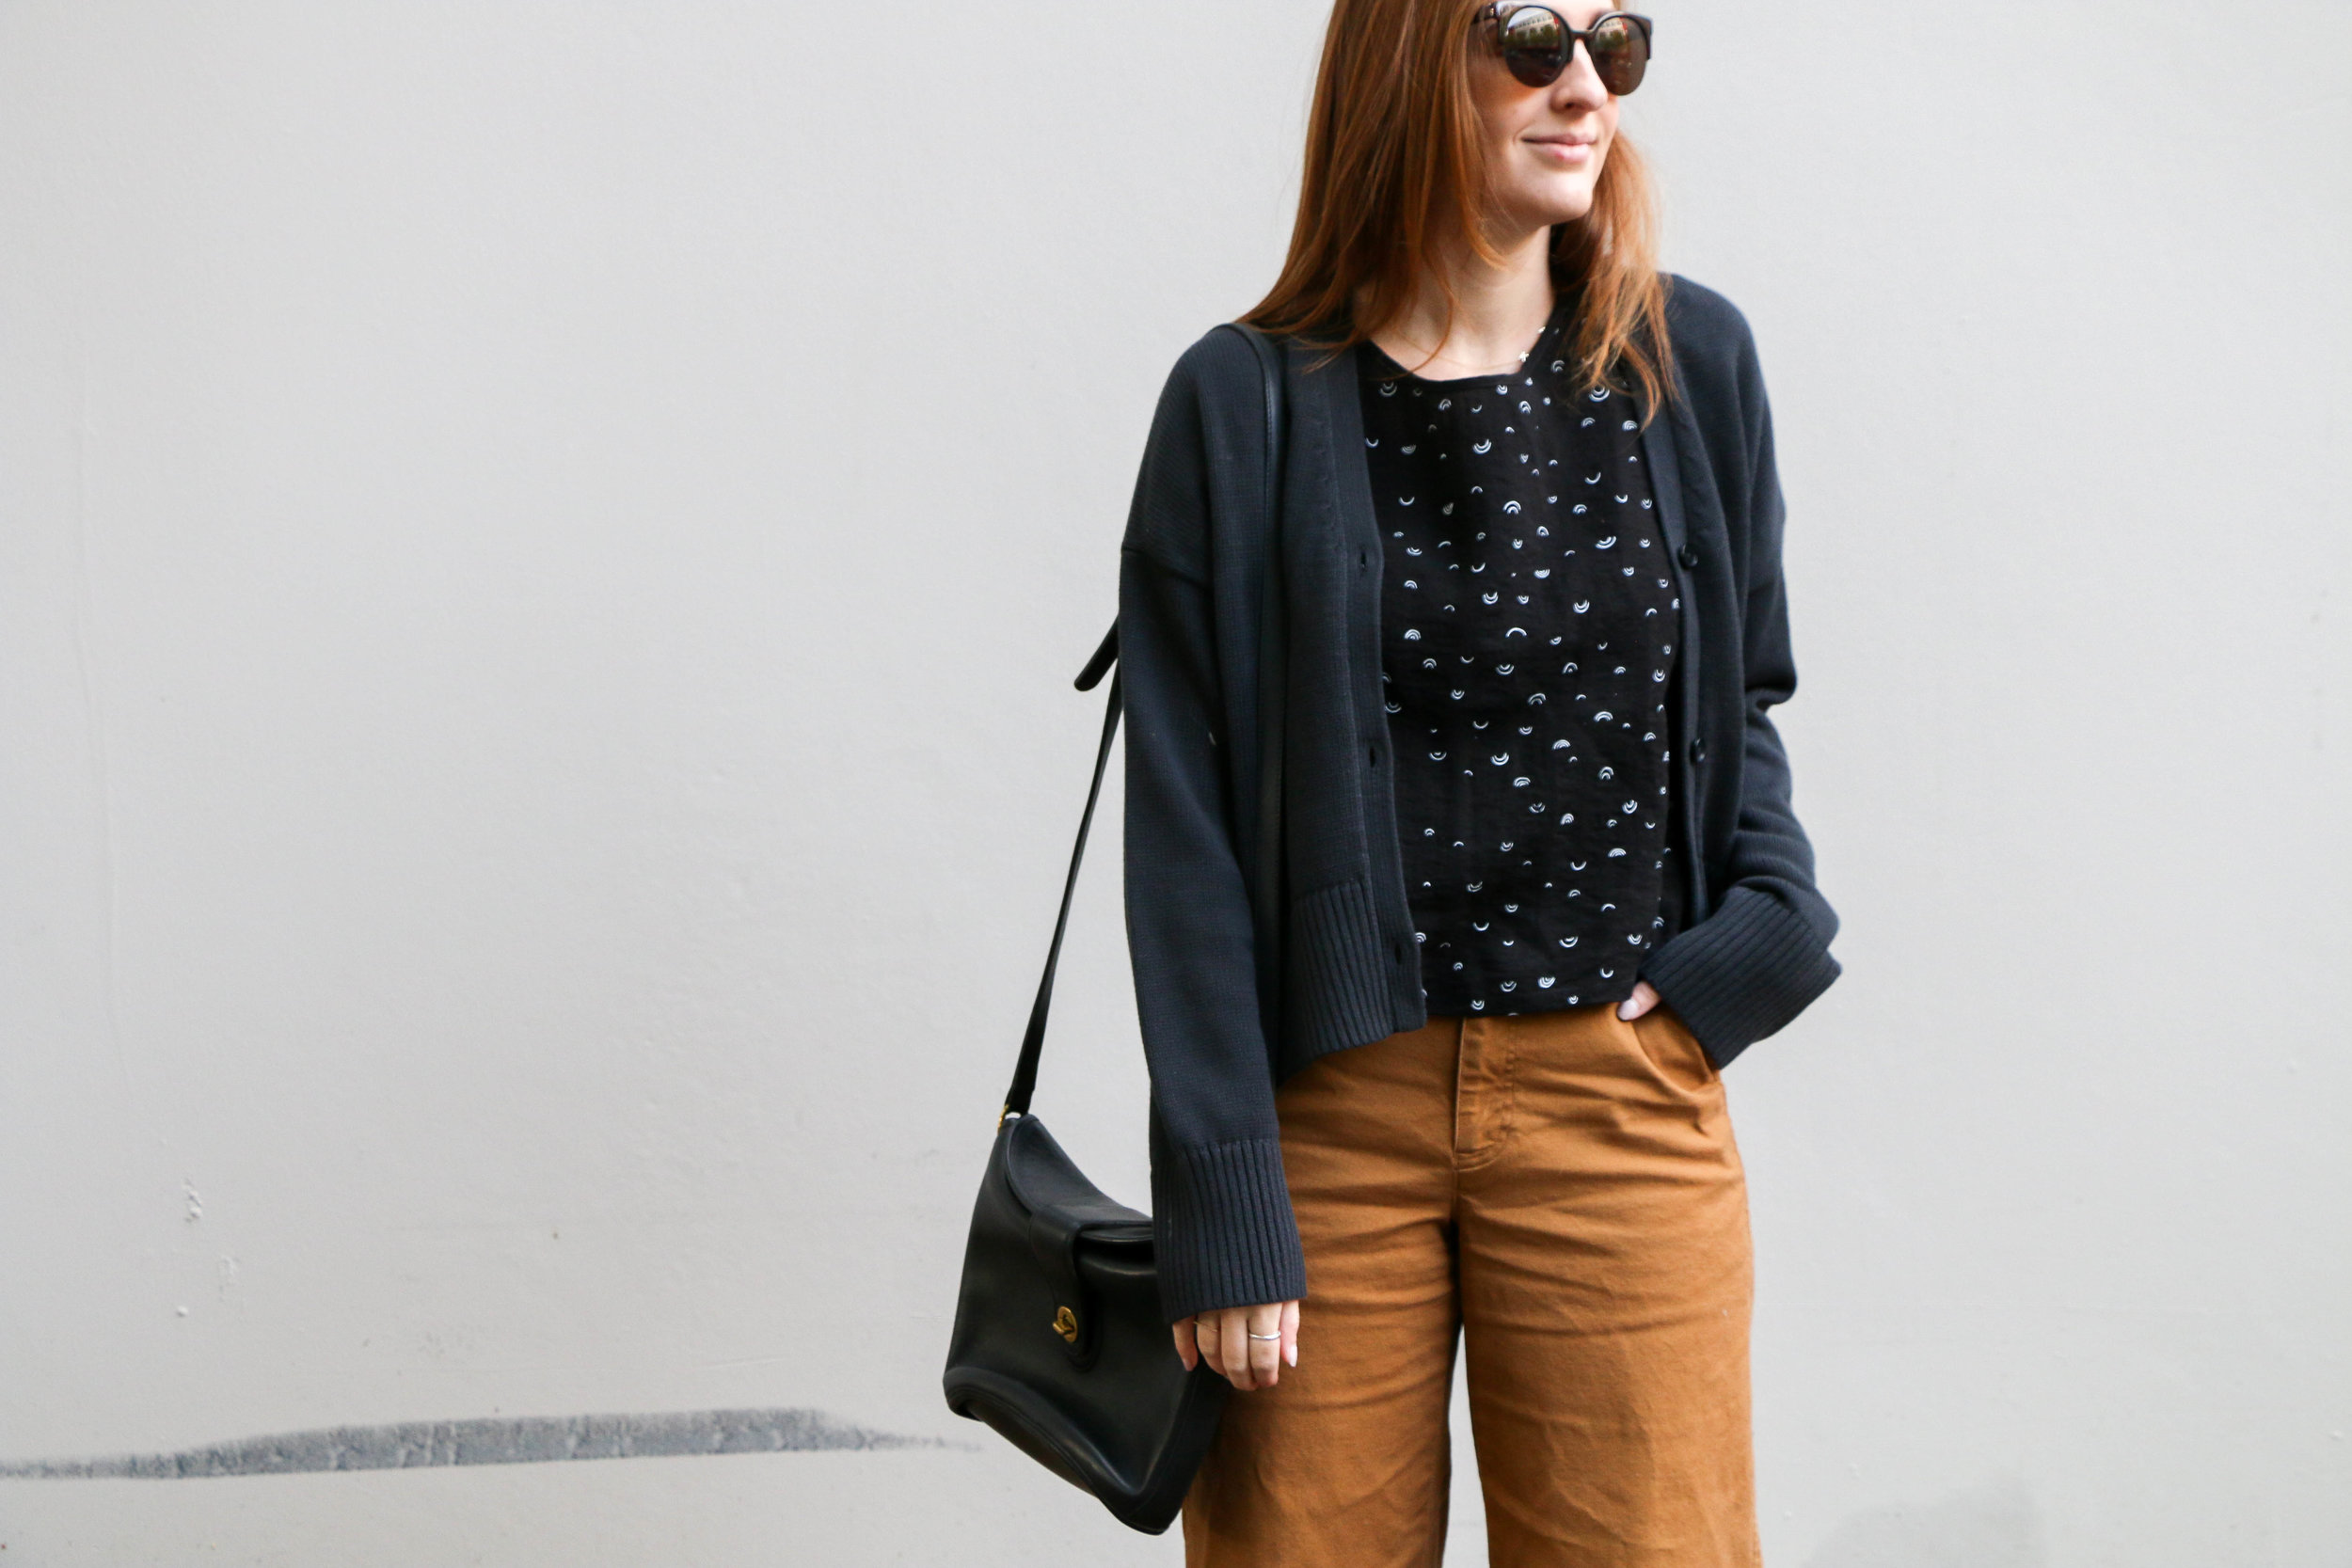 the-thoughtful-closet_fall-10x10_challenge_outfit-3_-4.jpg